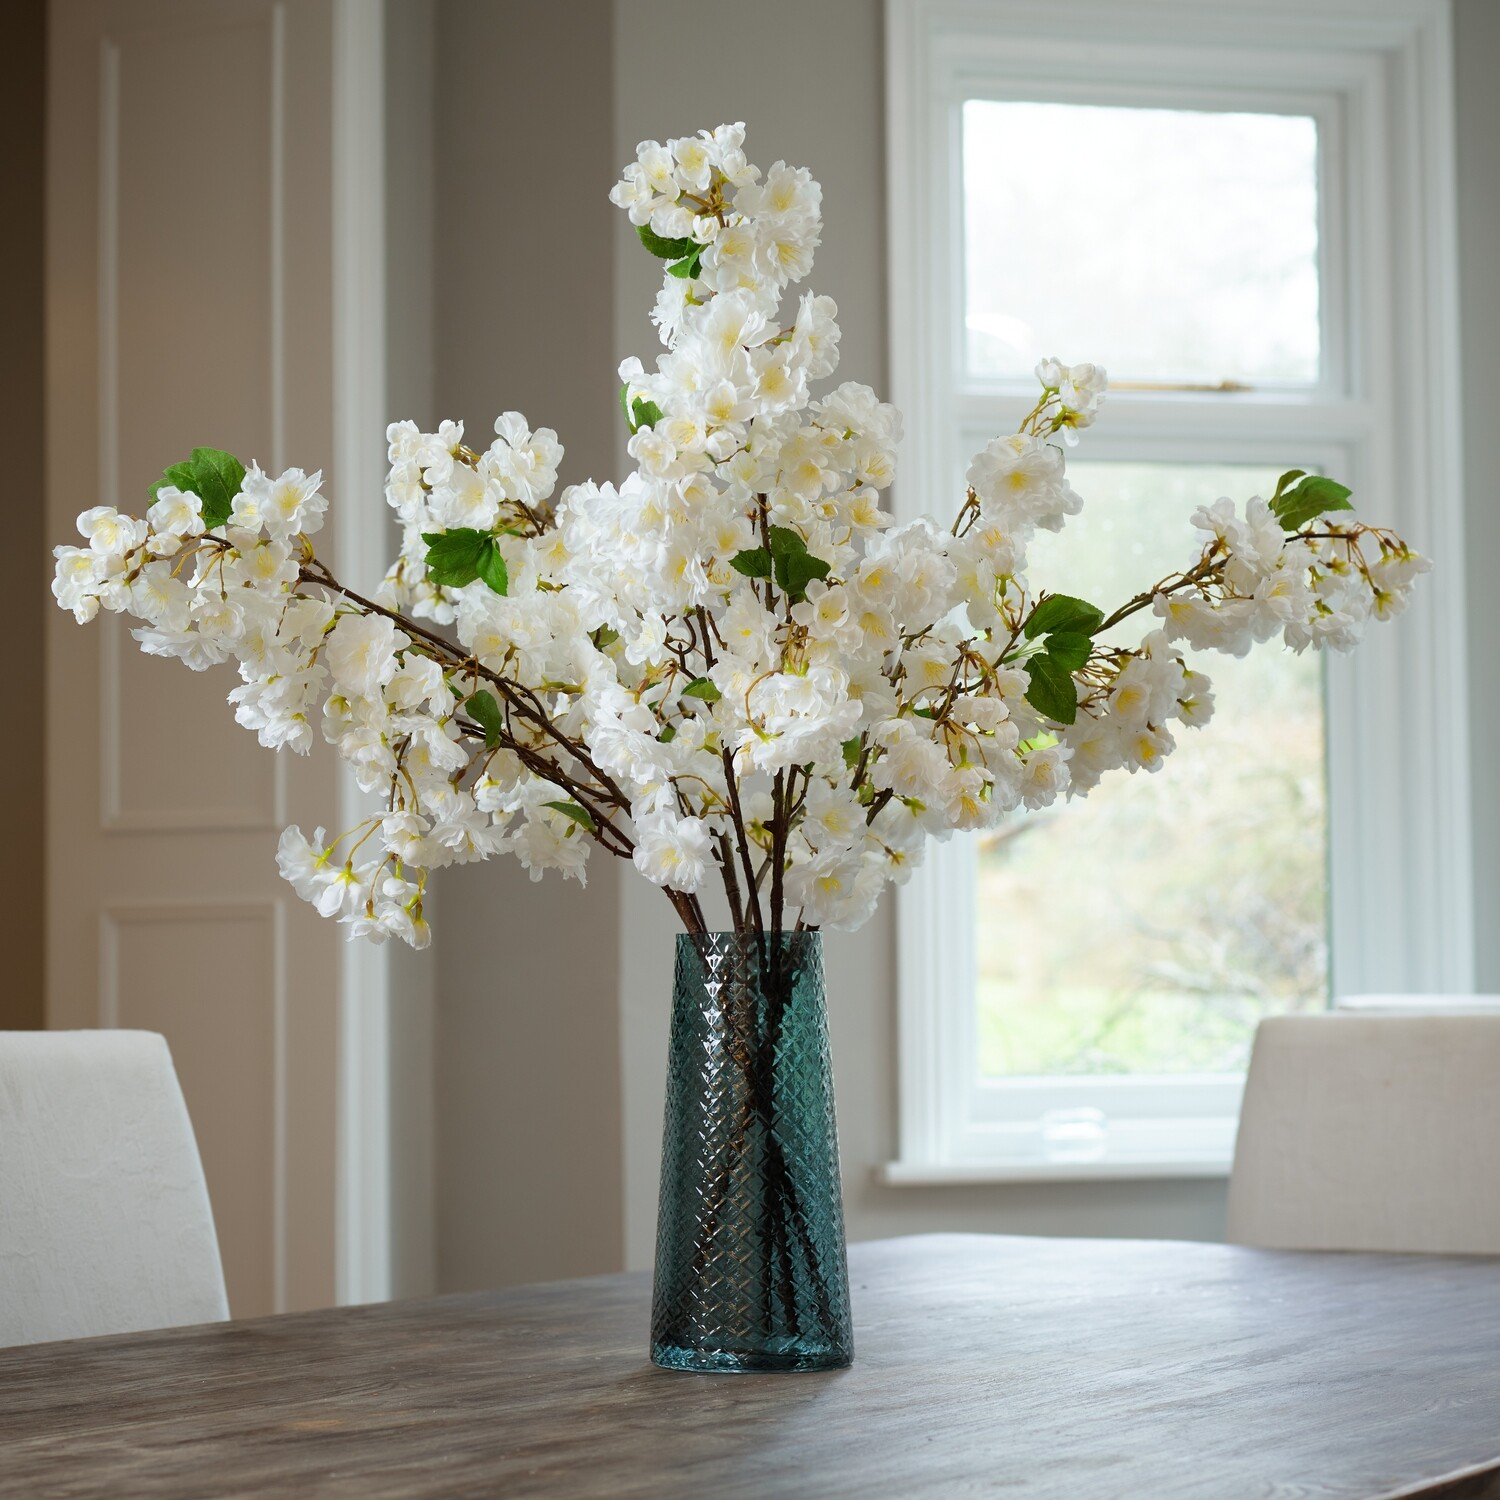 Blossom in a Blue-Smoked Textured Vase